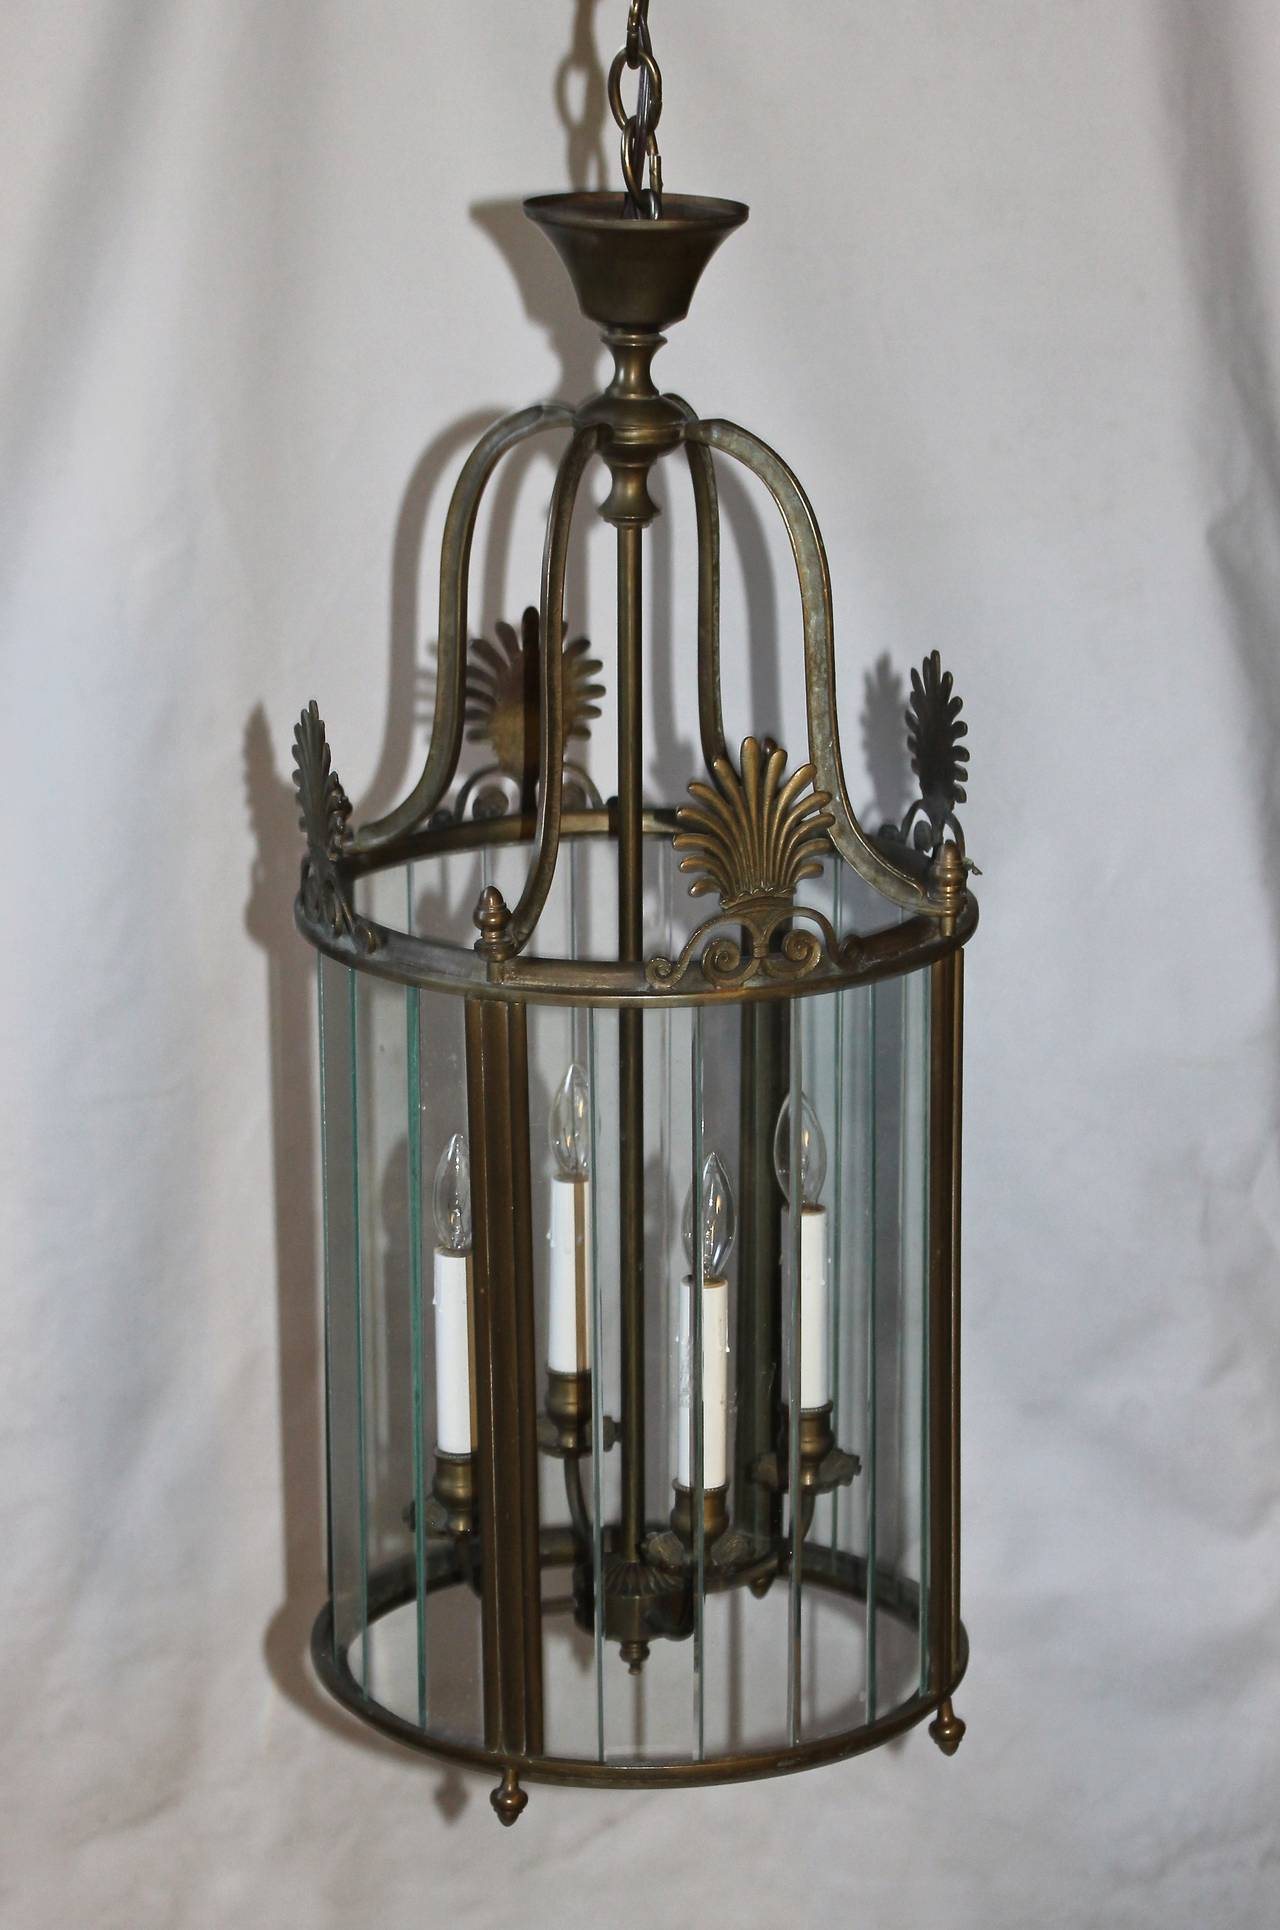 Mid-20th Century Large Italian Neoclassic Bronze Hall Lantern Pendant Light For Sale